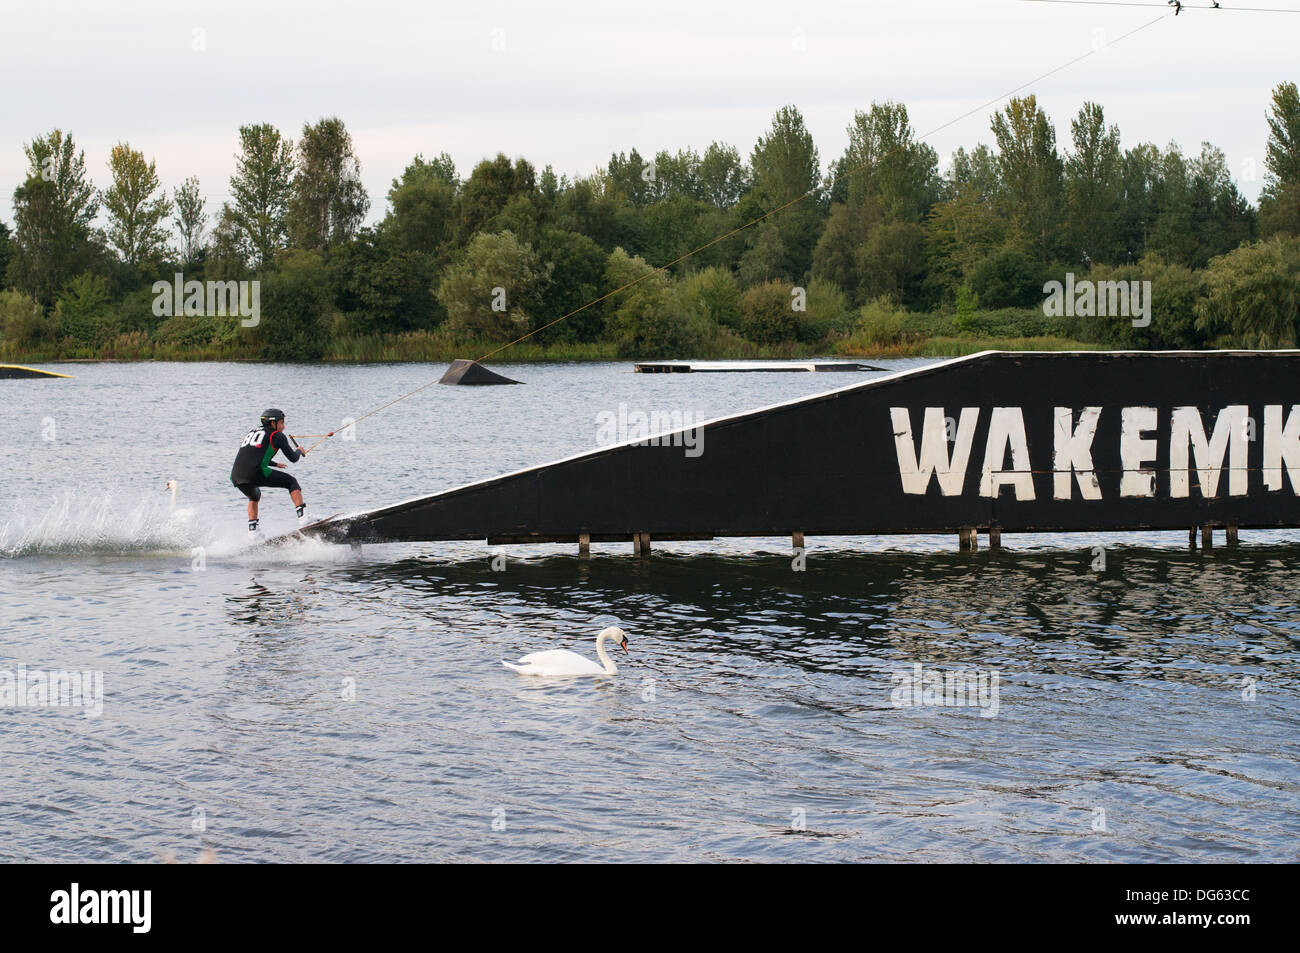 A wakeboarder about to ascend a ramp at the WAKEMK cable wakeboard and waterski centre Milton Keynes, England UK - Stock Image